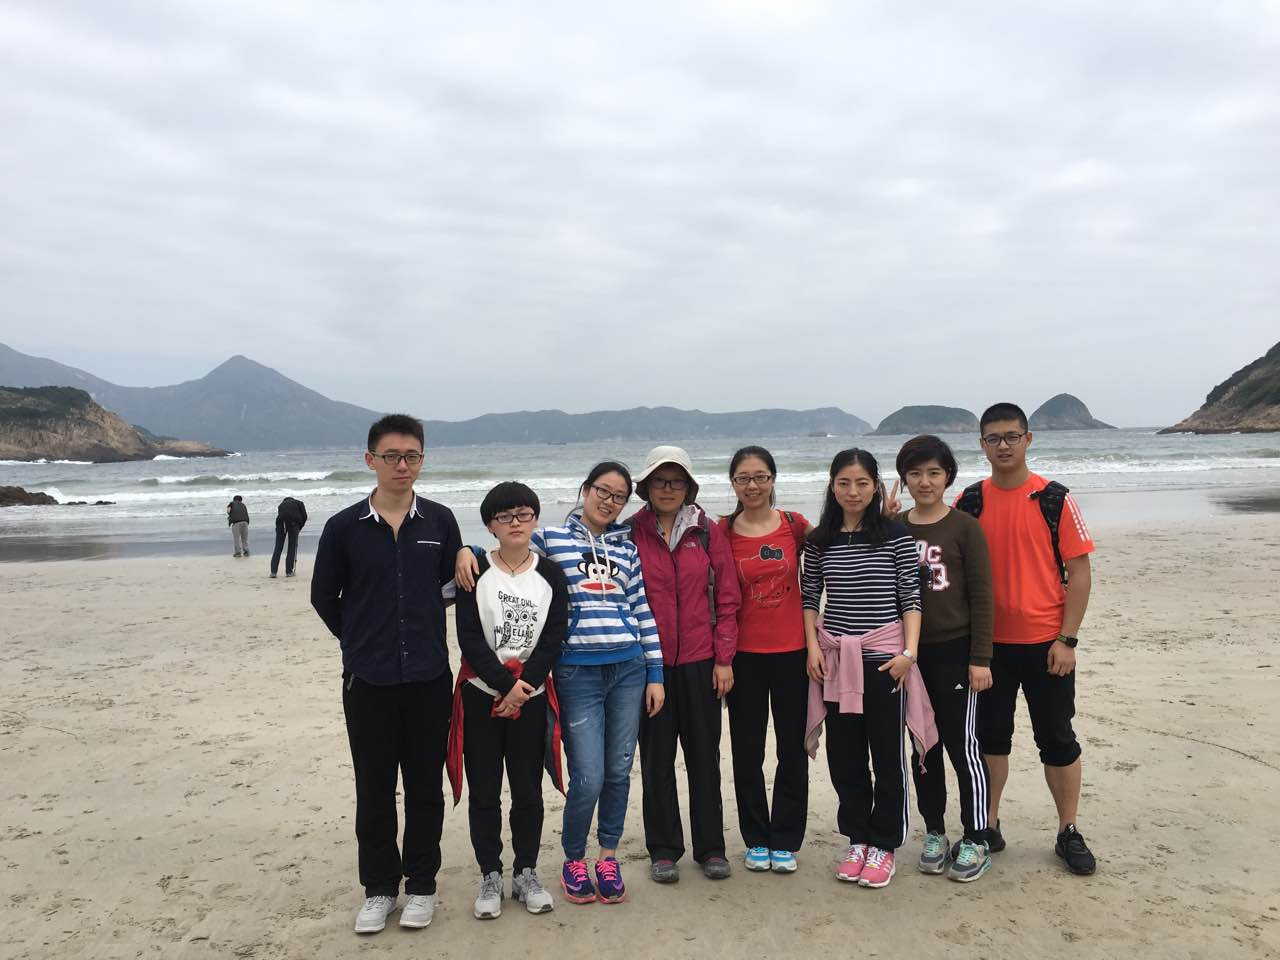 Hiking at Sai Wan